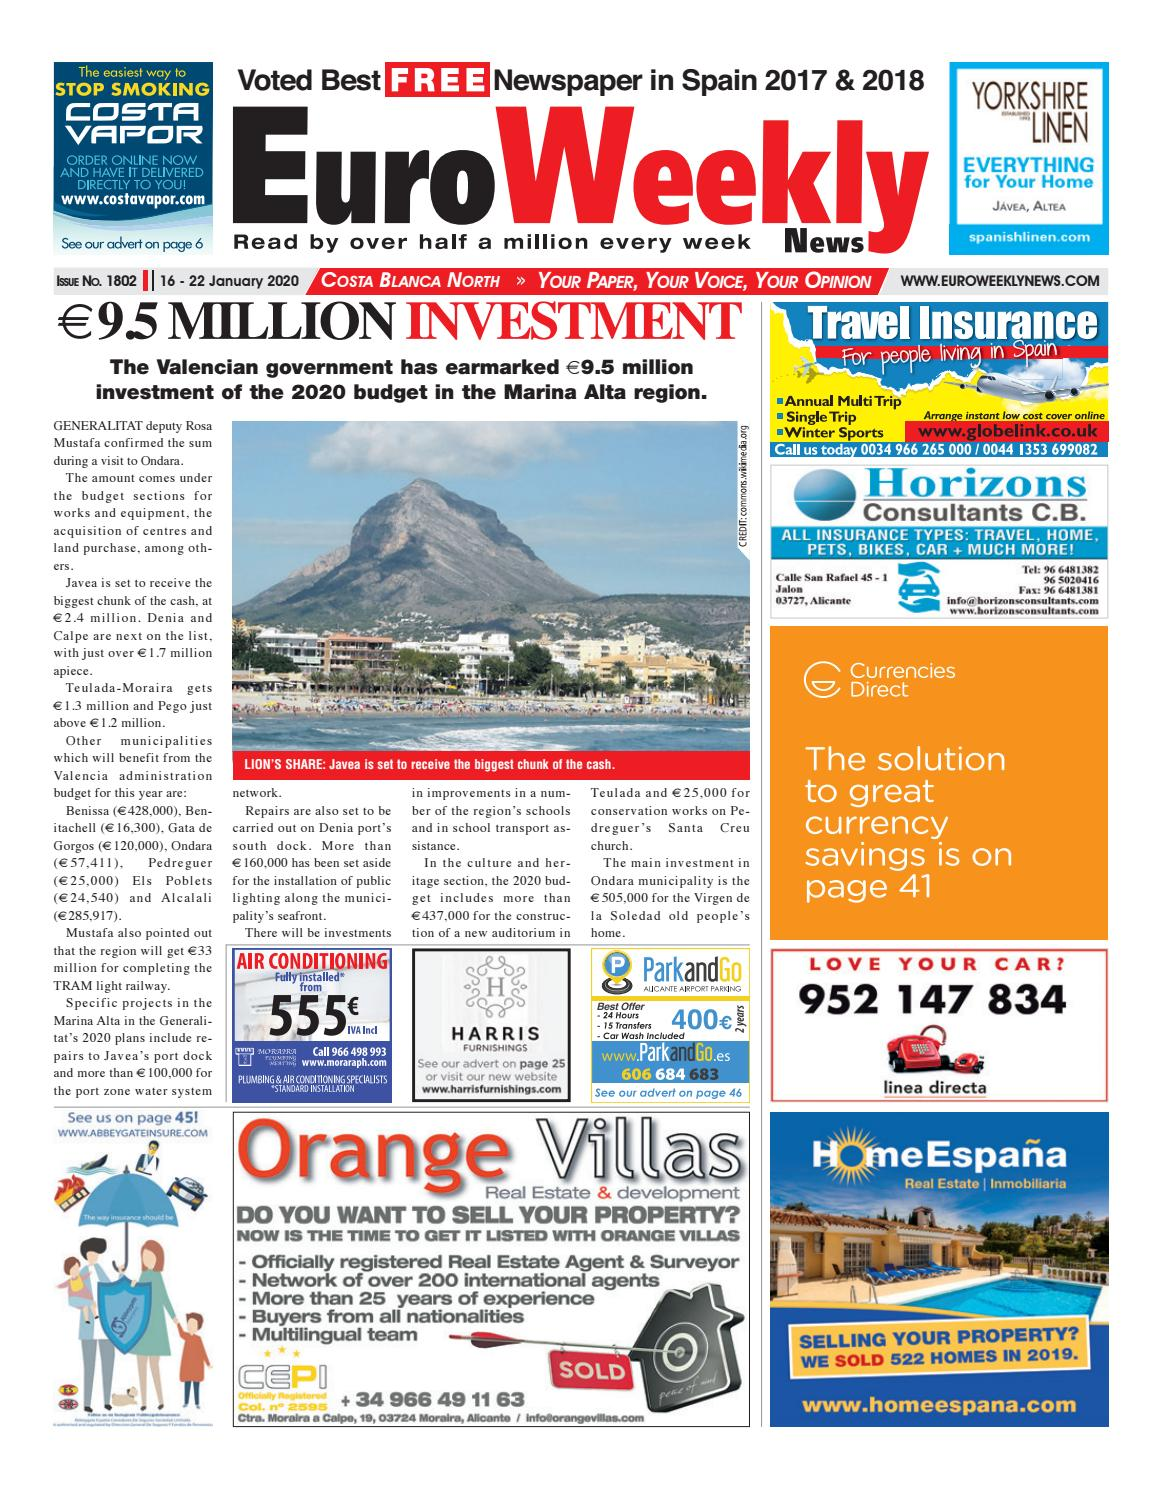 Euro Weekly News Costa Blanca North 16 22 January 2020 Issue